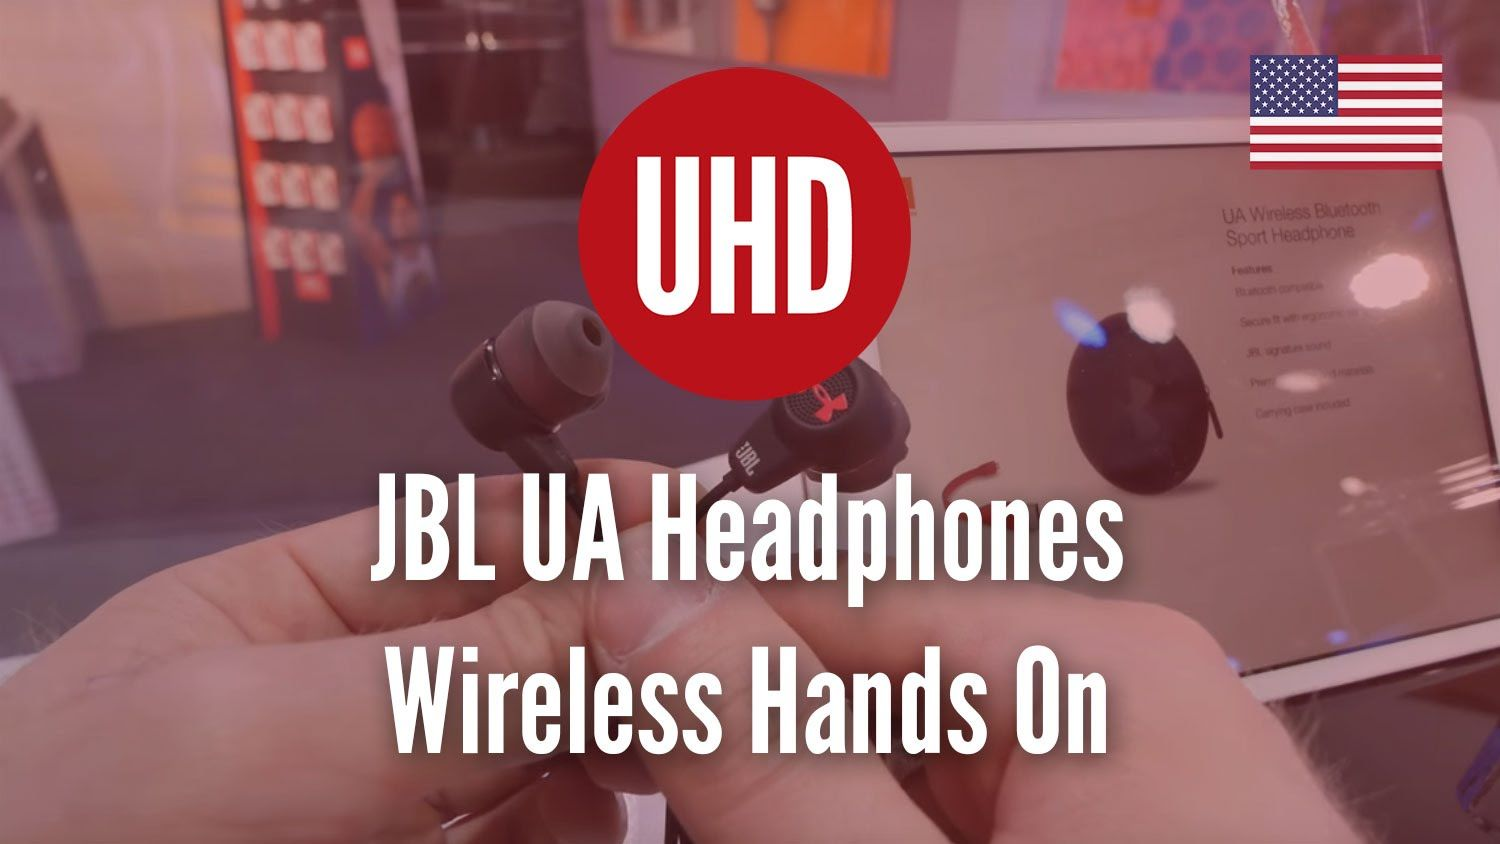 nice JBL UA Headphones Wireless Hands On  Check more at http://gadgetsnetworks.com/jbl-ua-headphones-wireless-hands-on-4k-uhd/